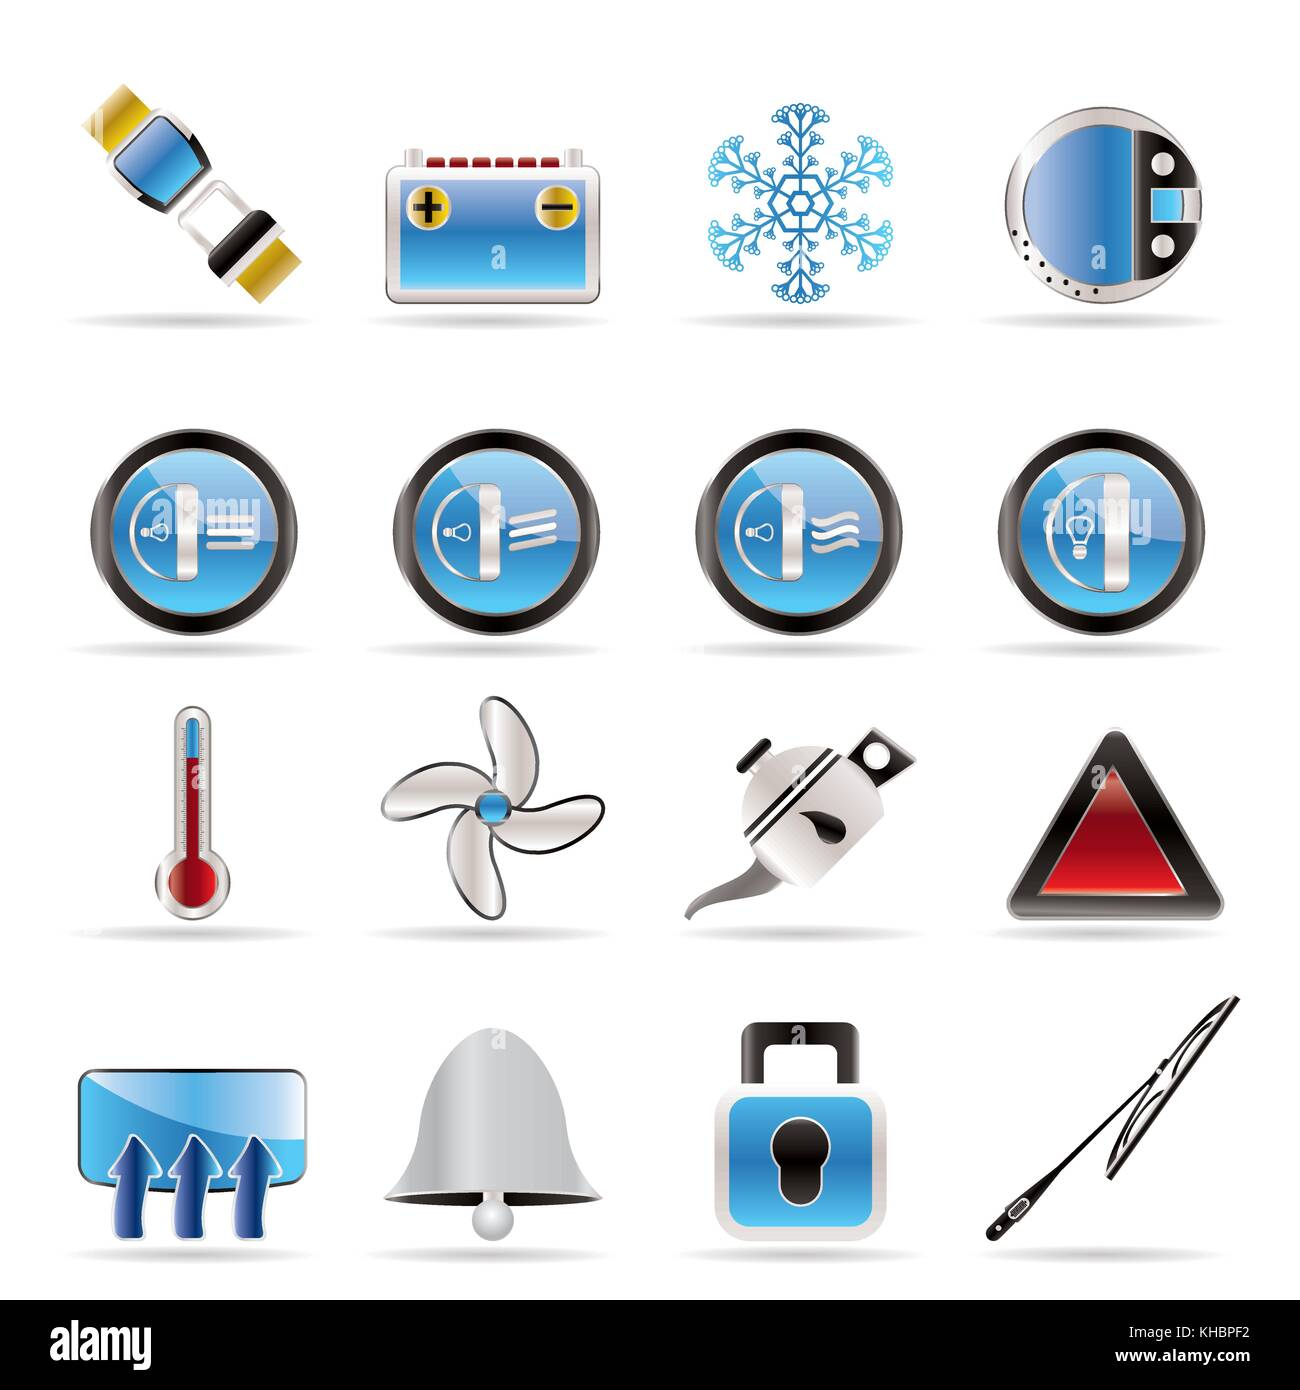 Car Dashboard Icons Stock Photos Images Diagram Realistic Vector Set Image